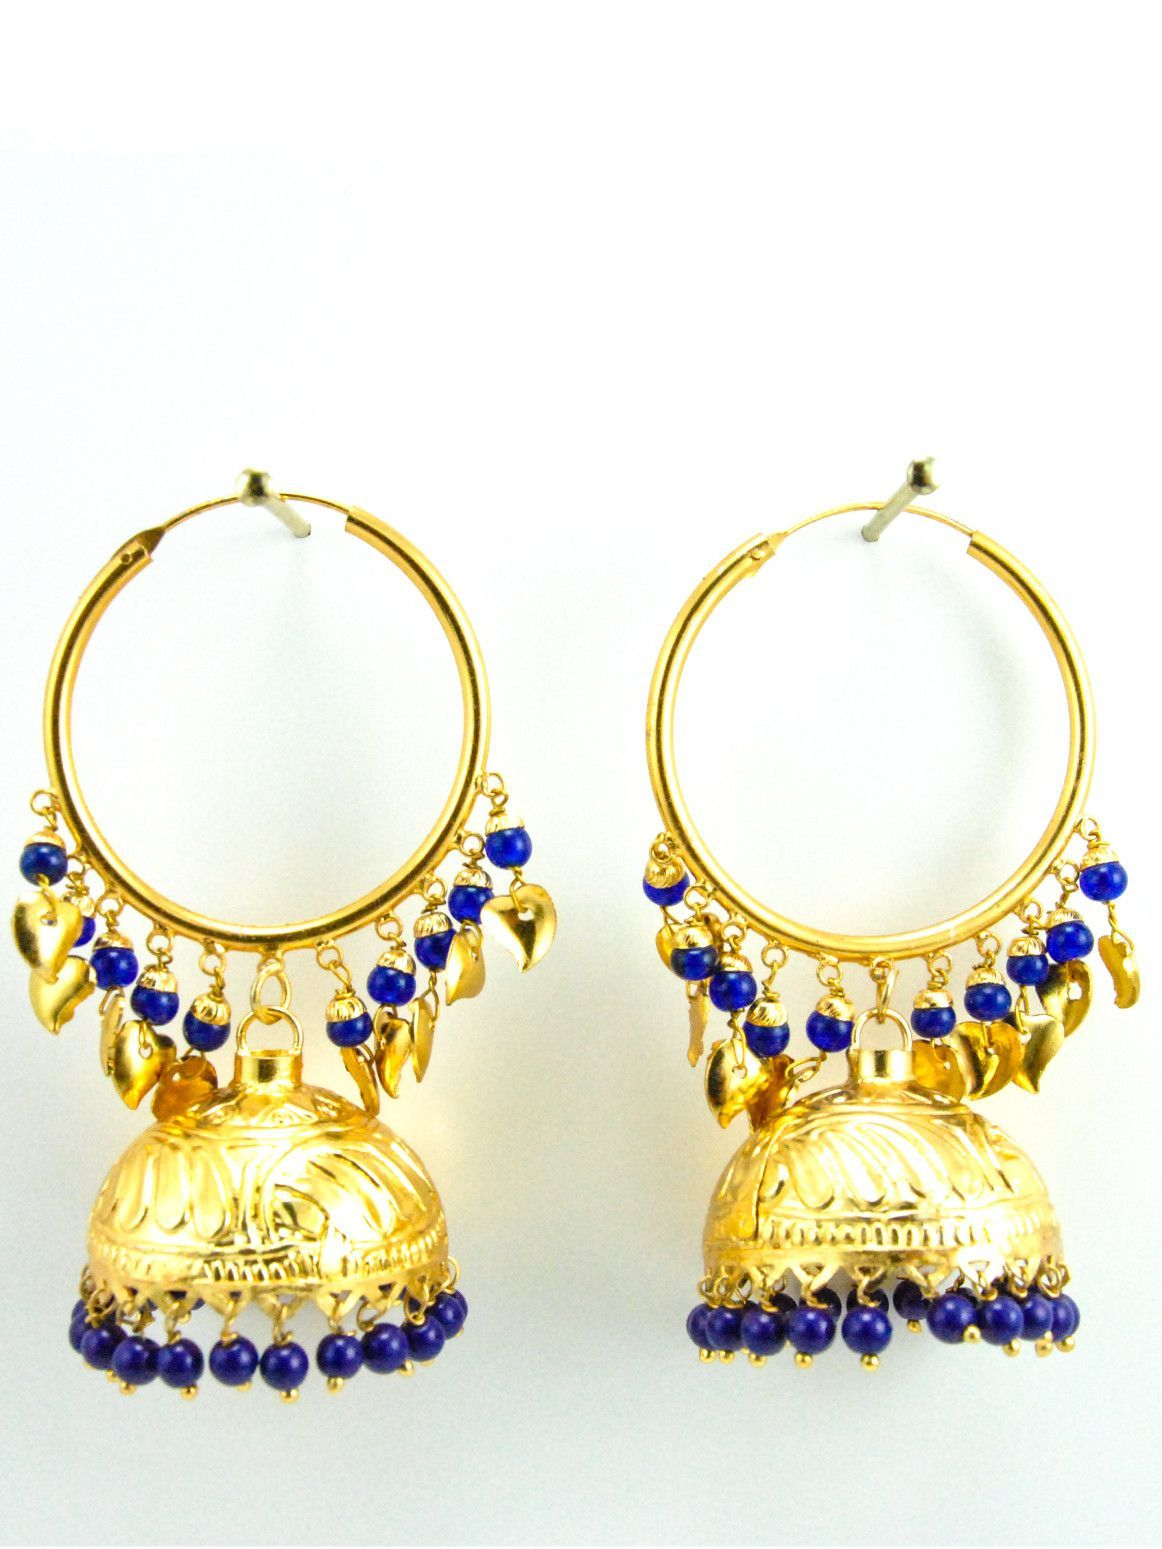 Desi Jhumka earrings with Gold leaves and Blue beads